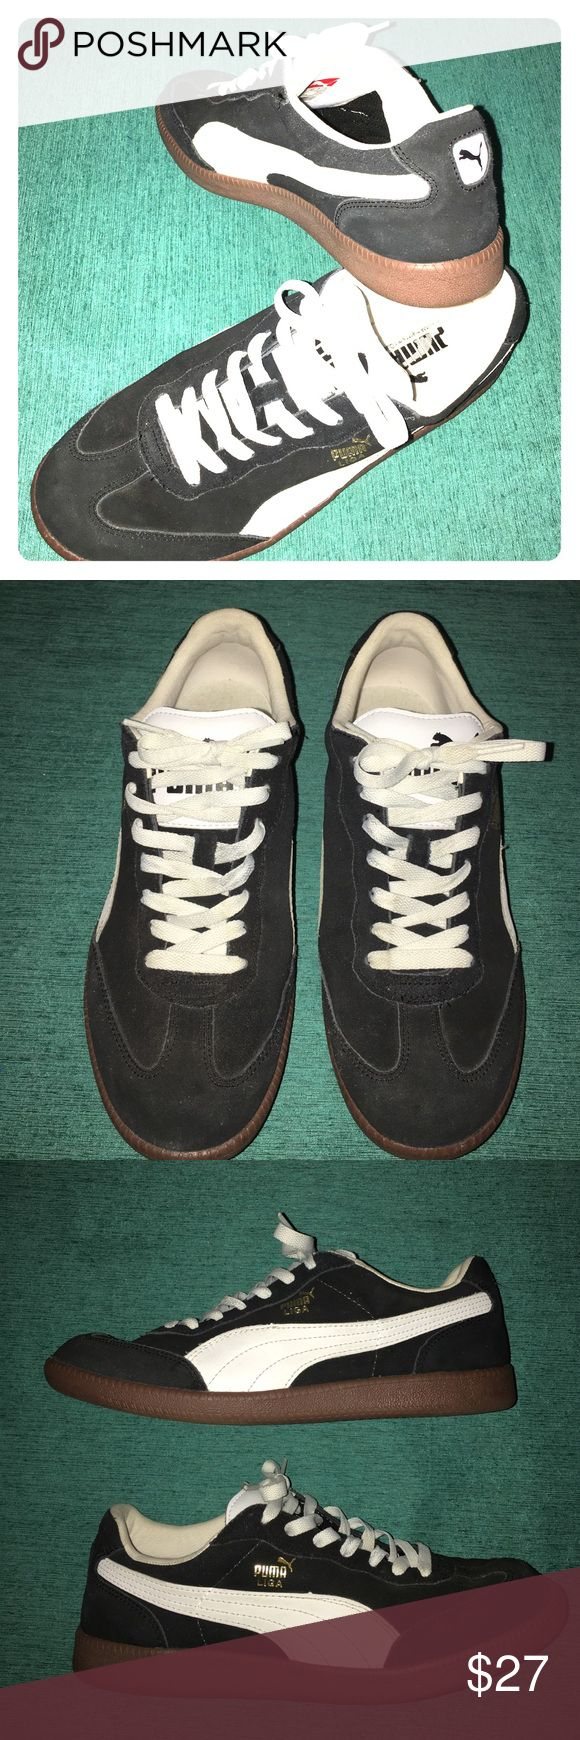 Puma Liga black & white tennis shoes size 9.5 Puma Liga black & white tennis shoes size 9.5. These shoes were well taken care of. Little wear on the shoes if you look at the bottom tread. No stains, rips or tears. Puma Shoes Sneakers